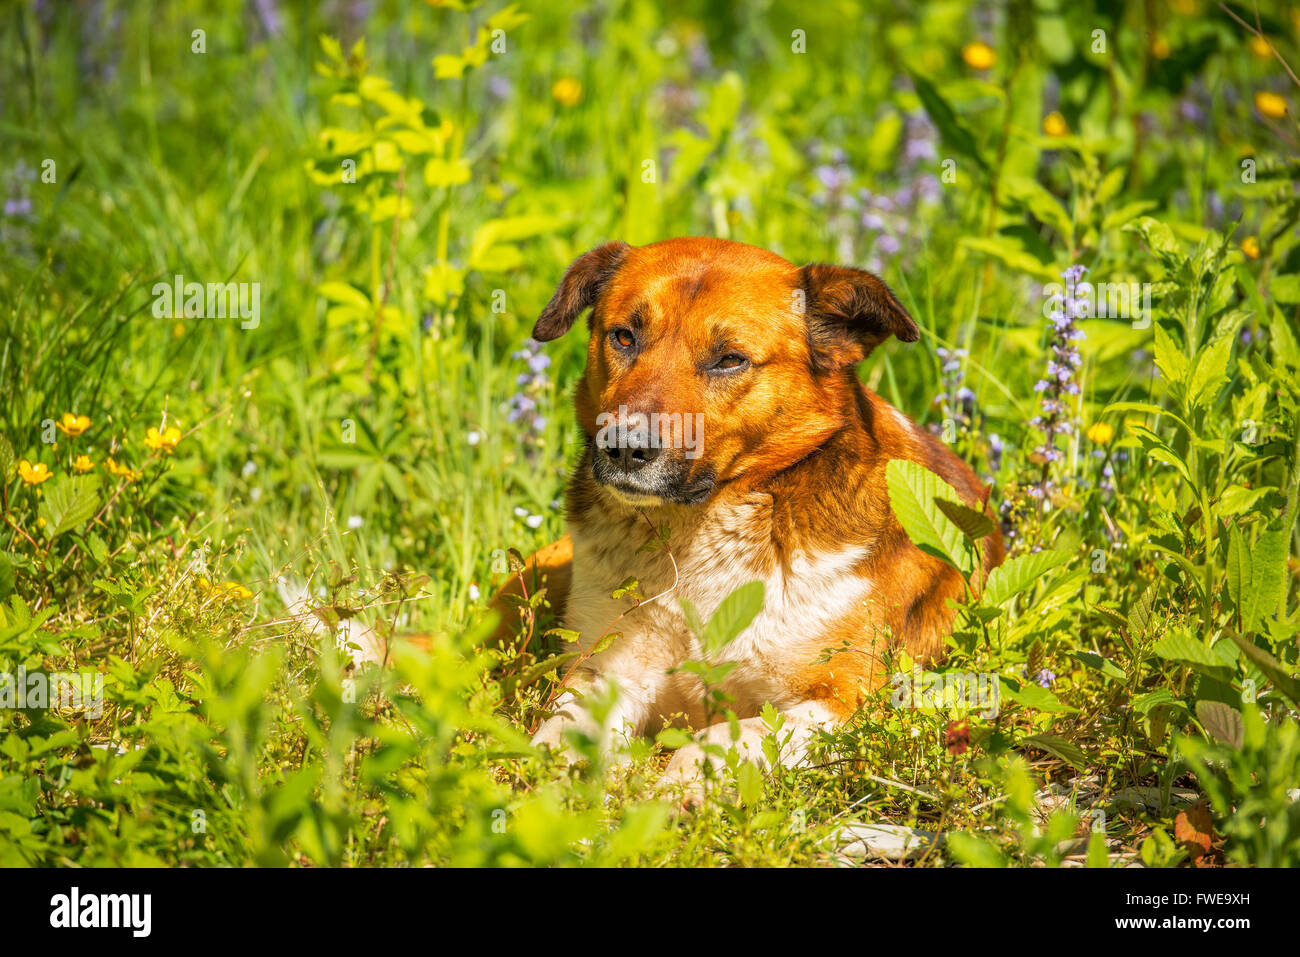 Young dog laying in the meadow grass - Stock Image